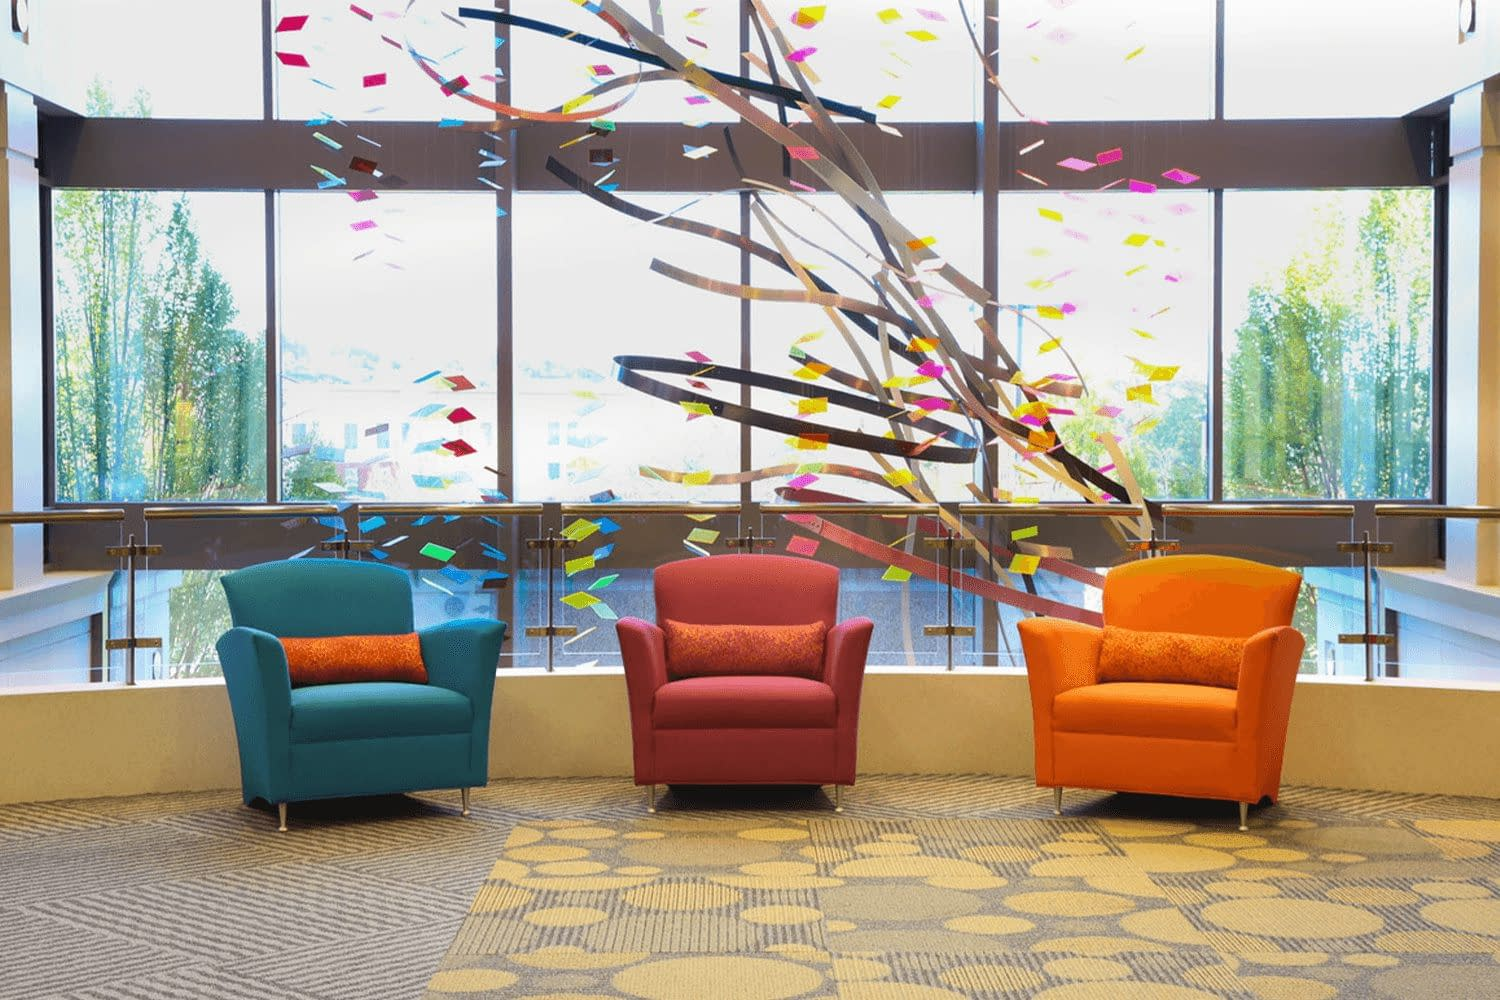 three vibrantly colored chairs, blue, light-red, and orange, overlooking a hanging sculpture and a wall fo windows